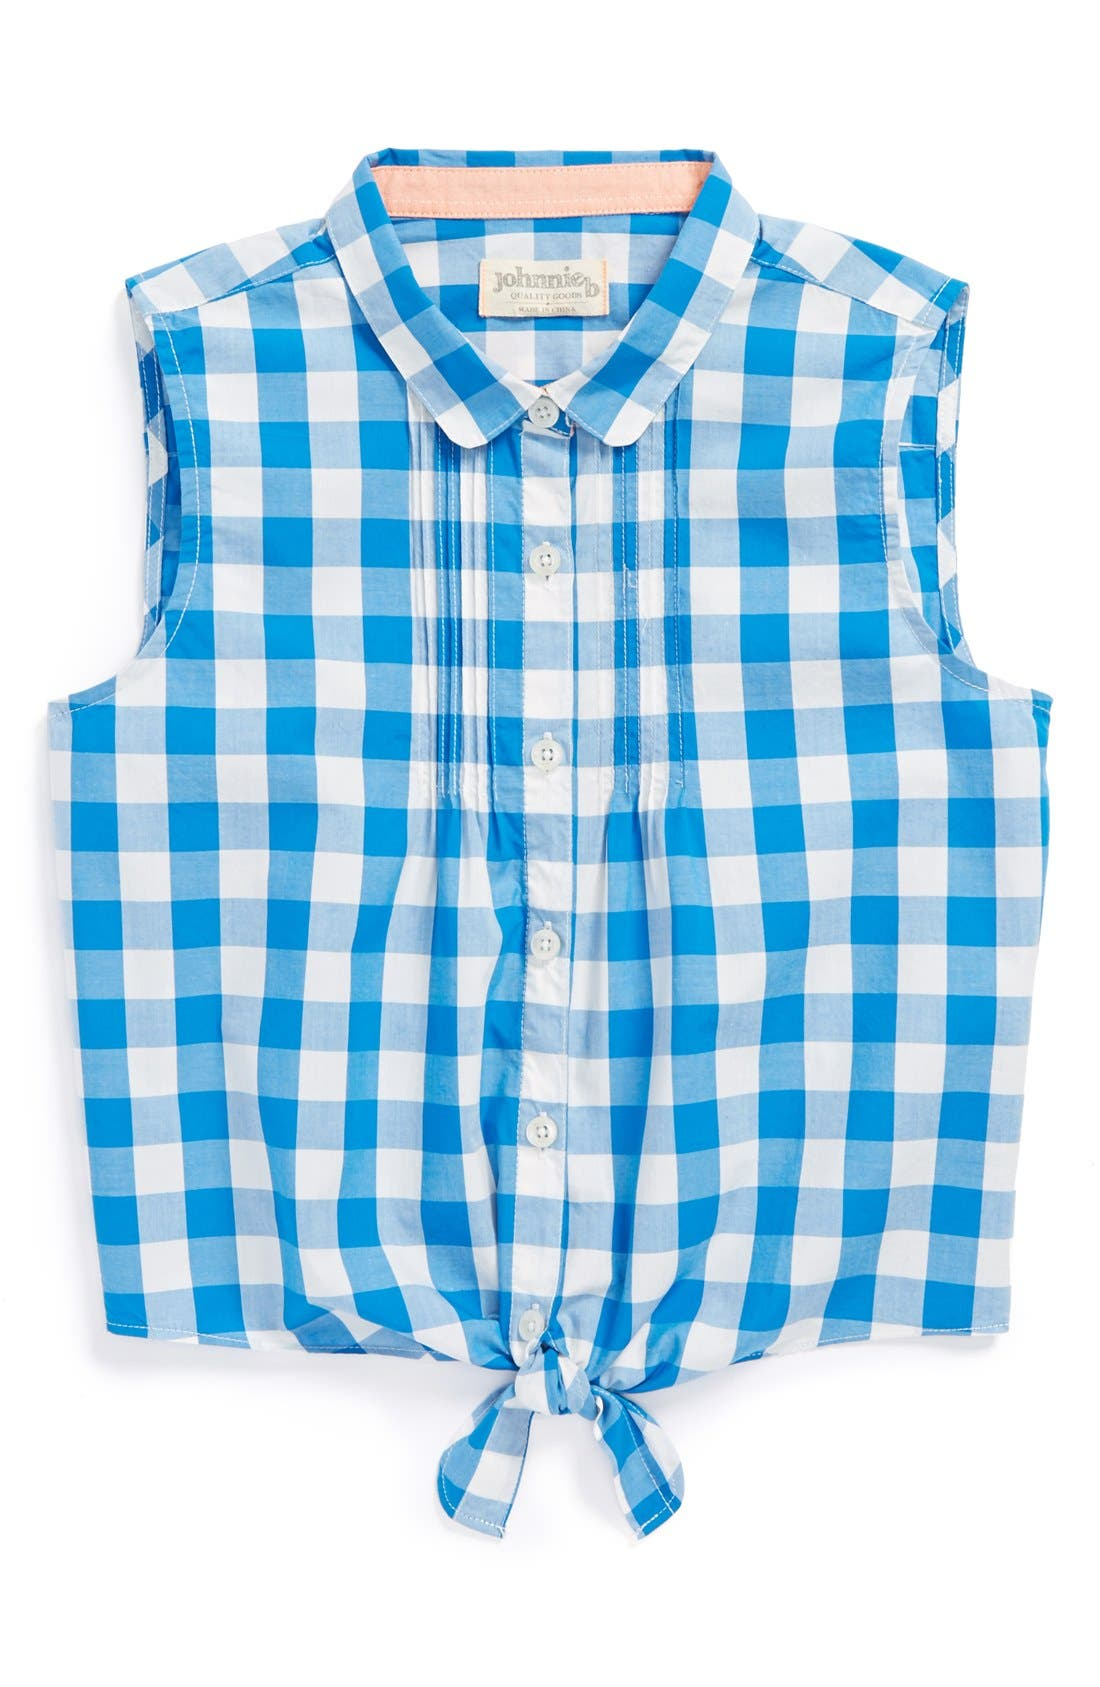 Main Image - Johnnie B by Boden 'Tie Front' Sleeveless Shirt (Big Girls)